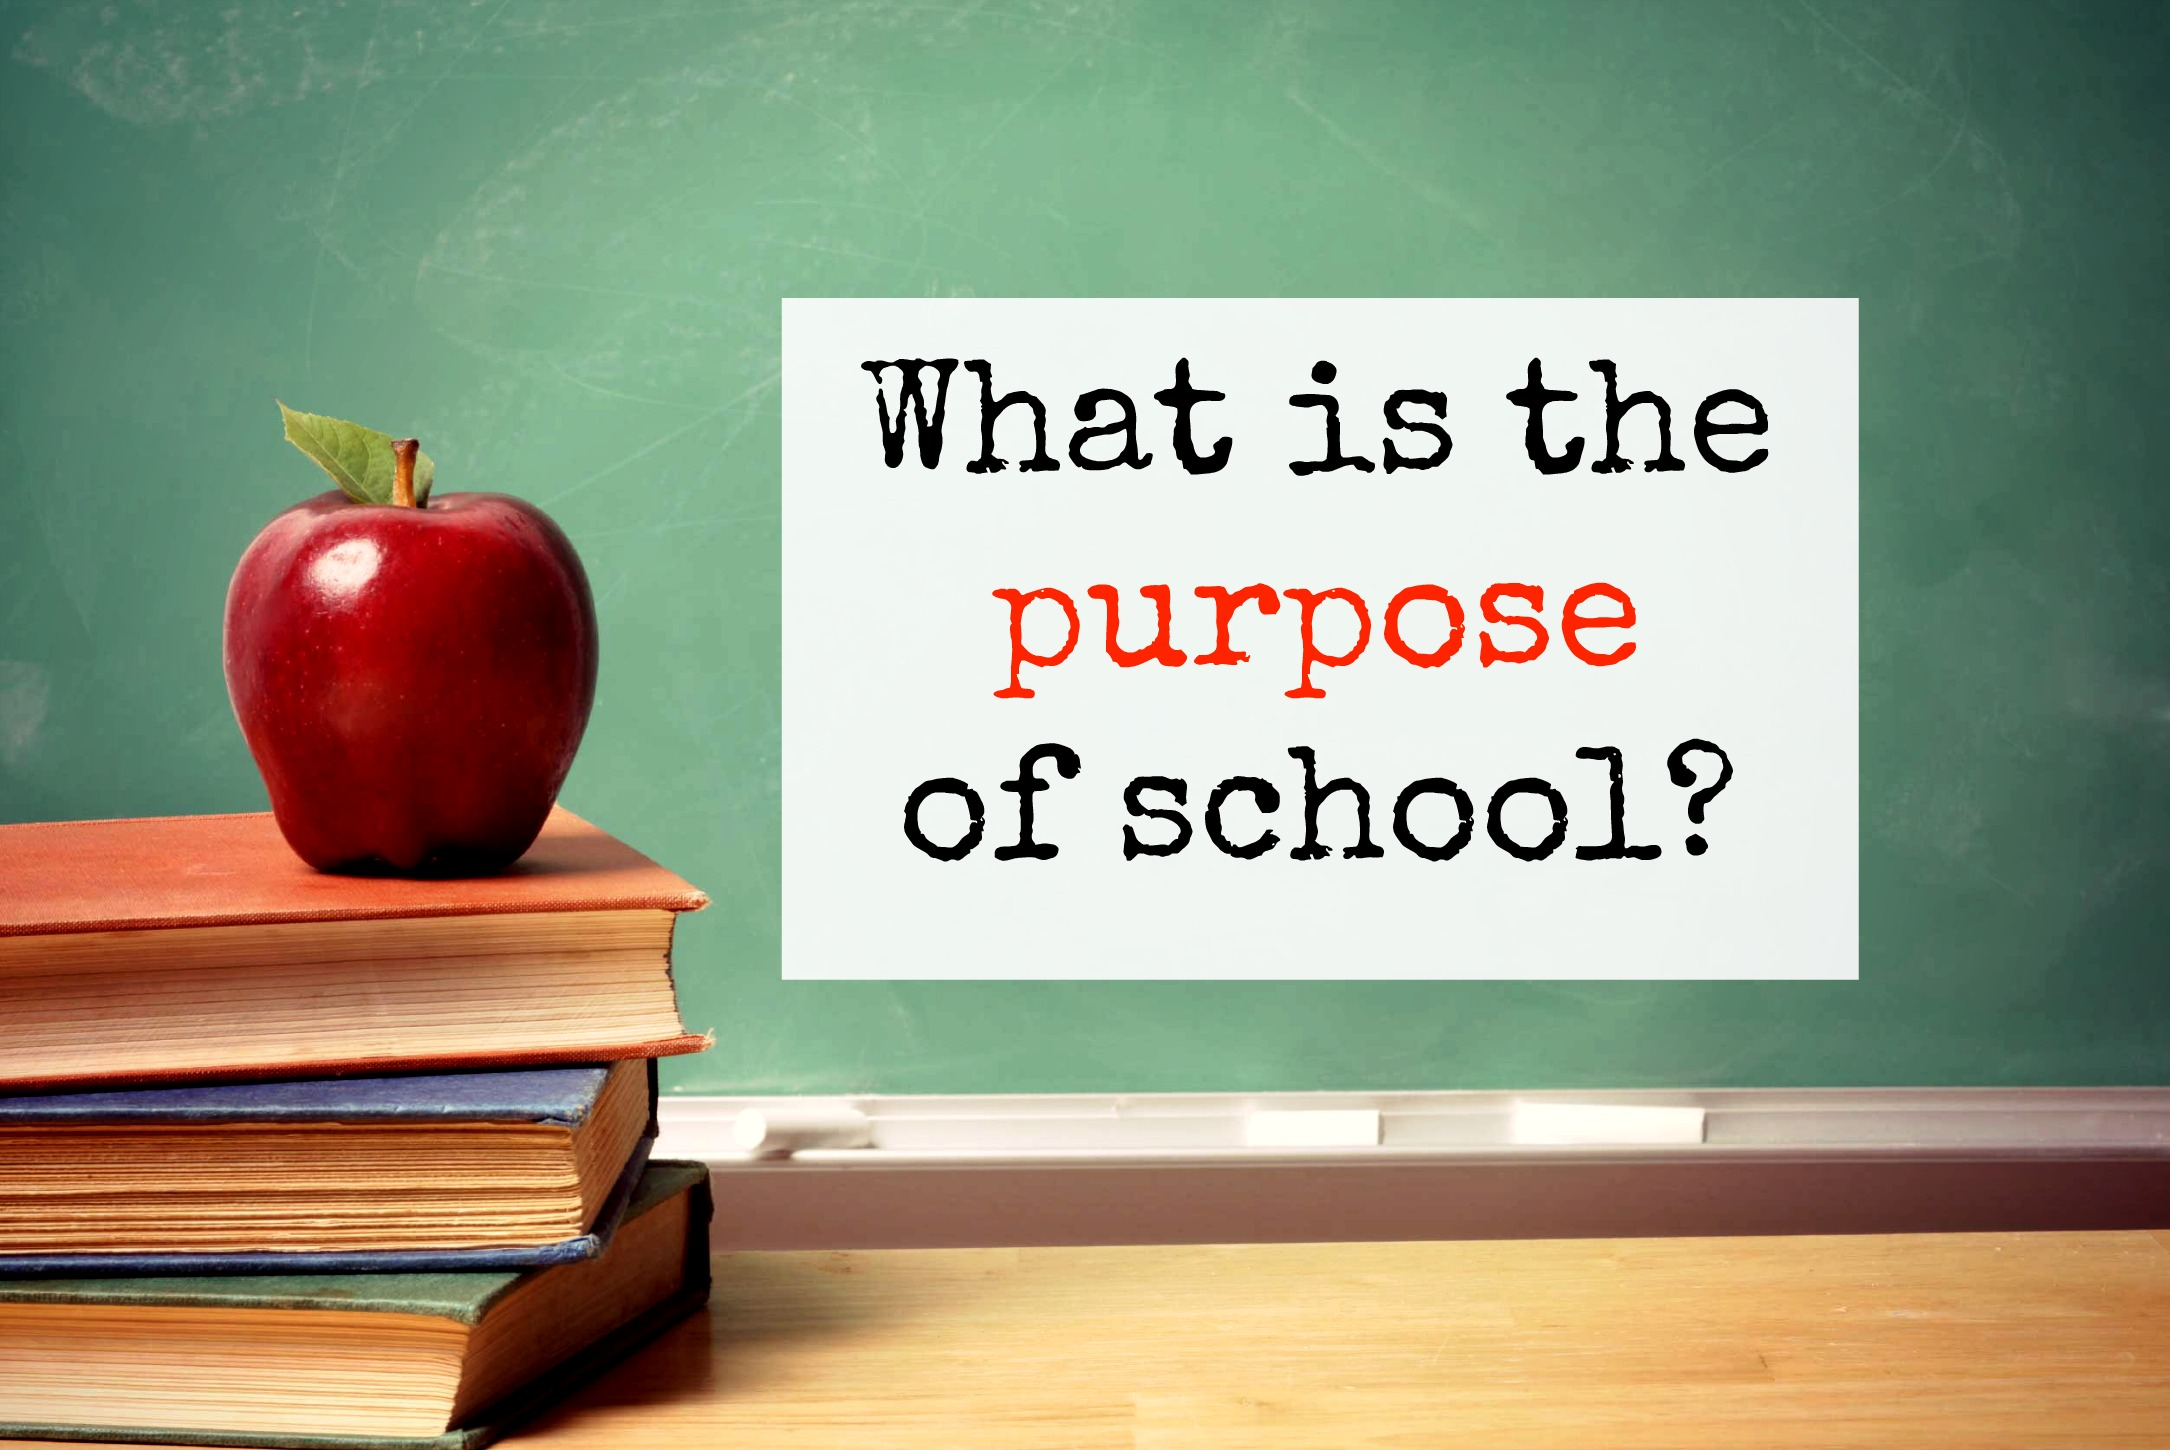 What Is The Purpose Of School?  Youth Are Awesome. Cheap Kitchen Decor Ideas. Small Kitchen Layouts Galley. Classic White Kitchen Designs. White Kitchen With Black Countertops. Sur La Table Kitchen Island. Kitchen Backsplash Glass Tile Design Ideas. L-shaped Kitchen Islands With Seating. Images Of Kitchens With White Cabinets